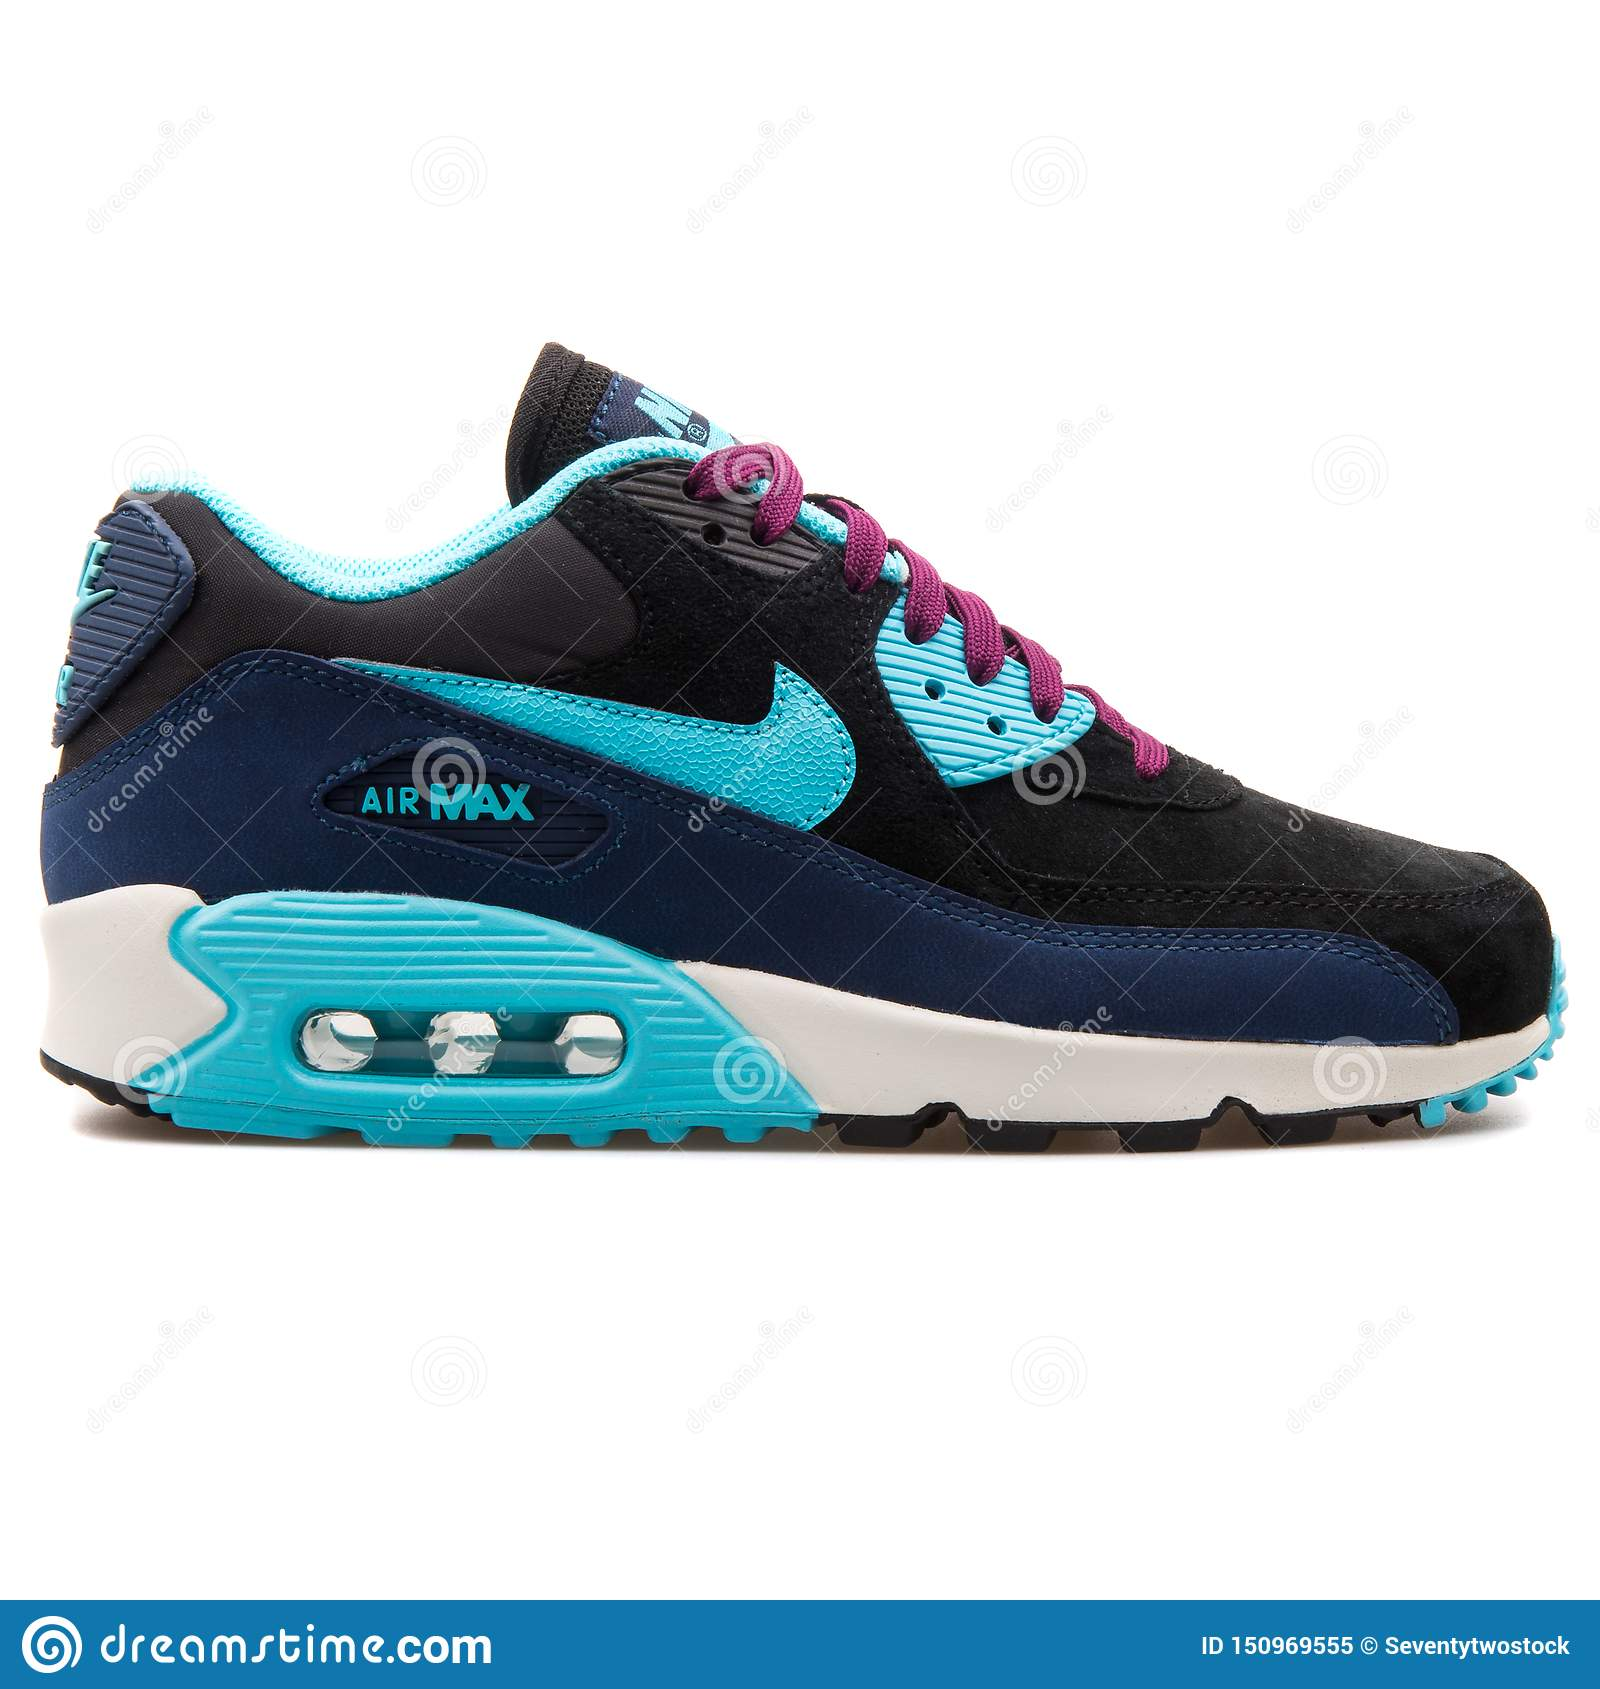 Nike Air Max 90 Leather Black, Blue And Navy Blue Sneaker